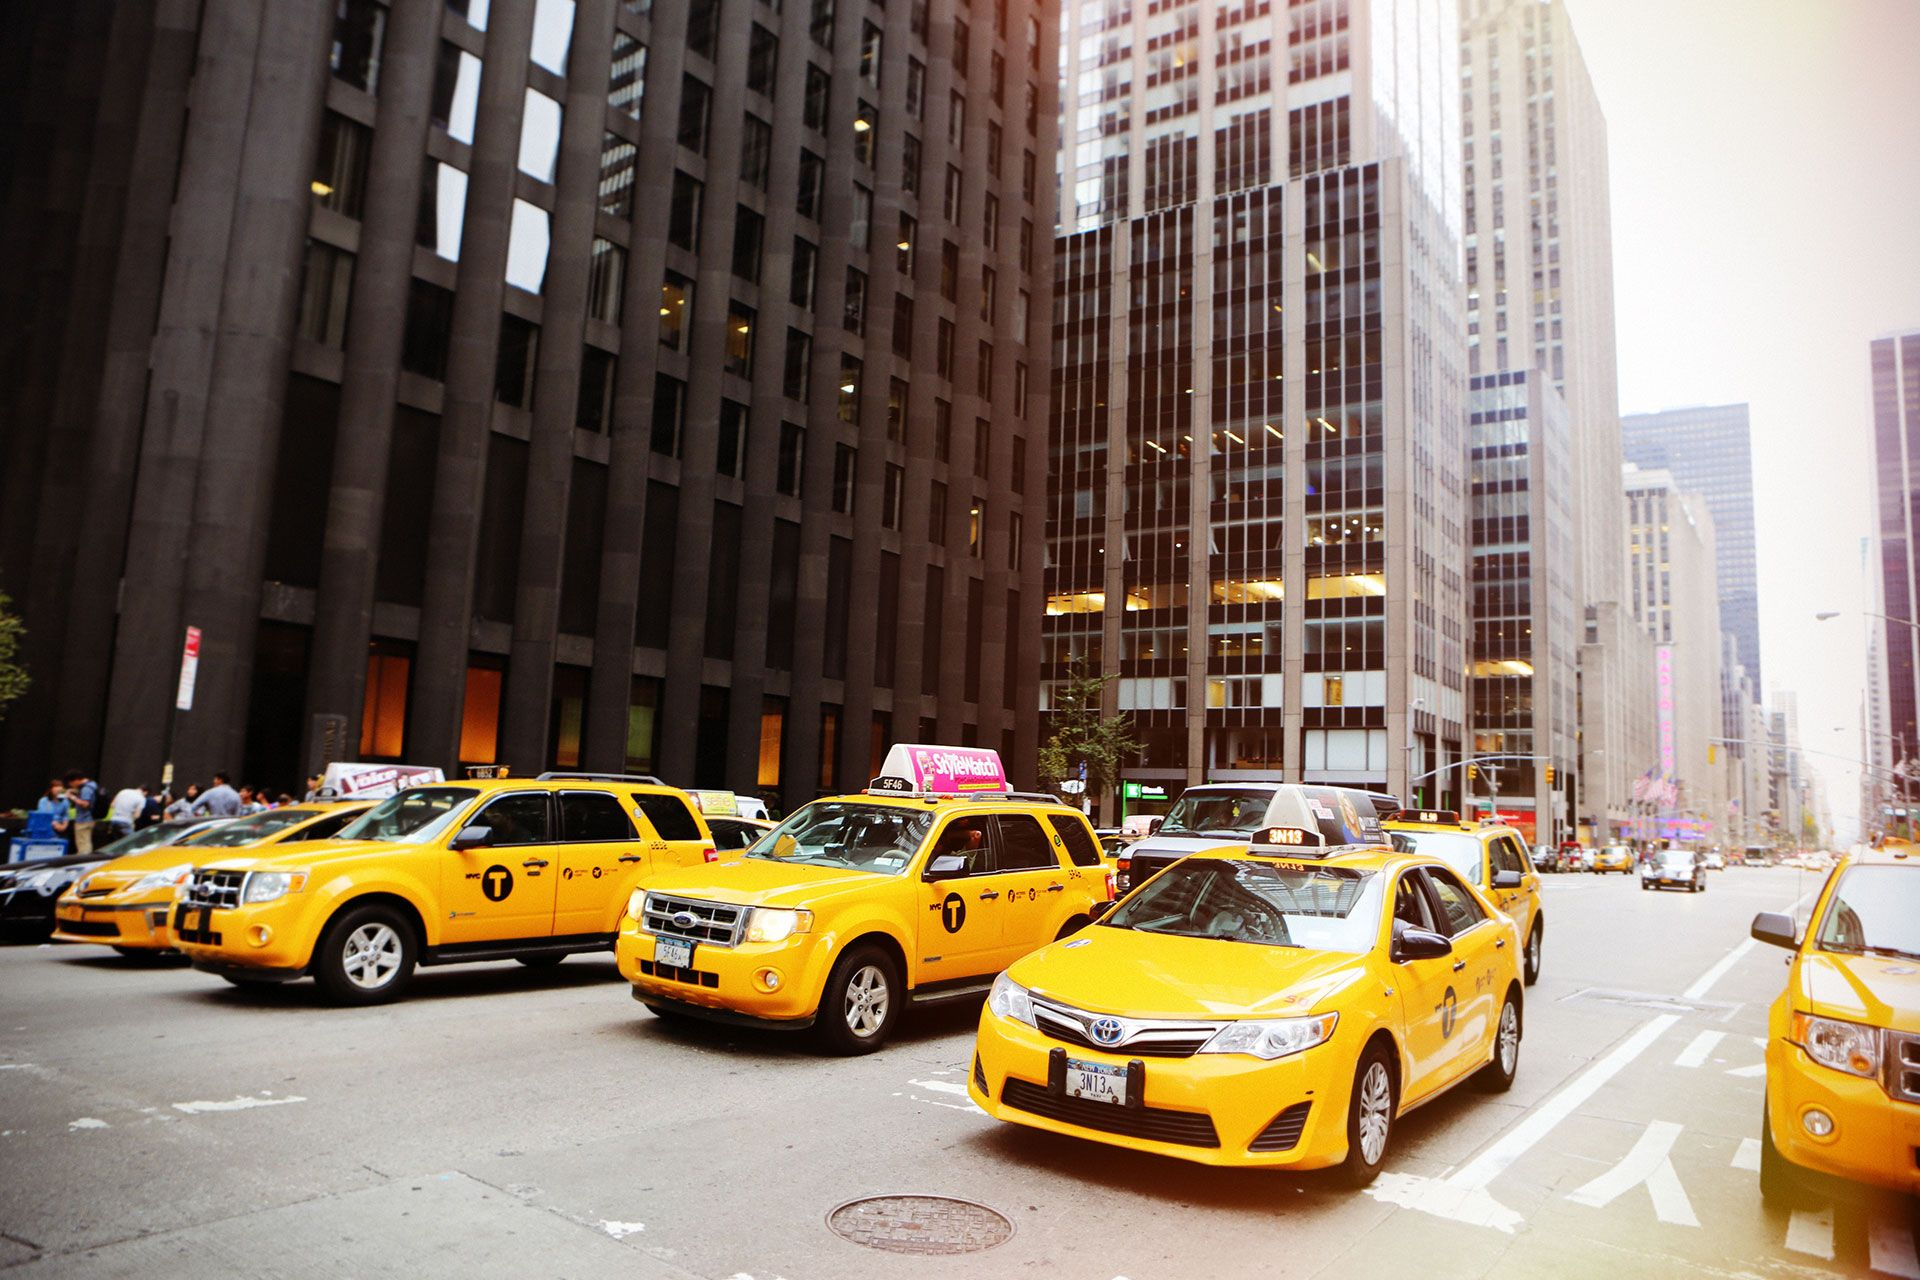 Taxi in Downtown